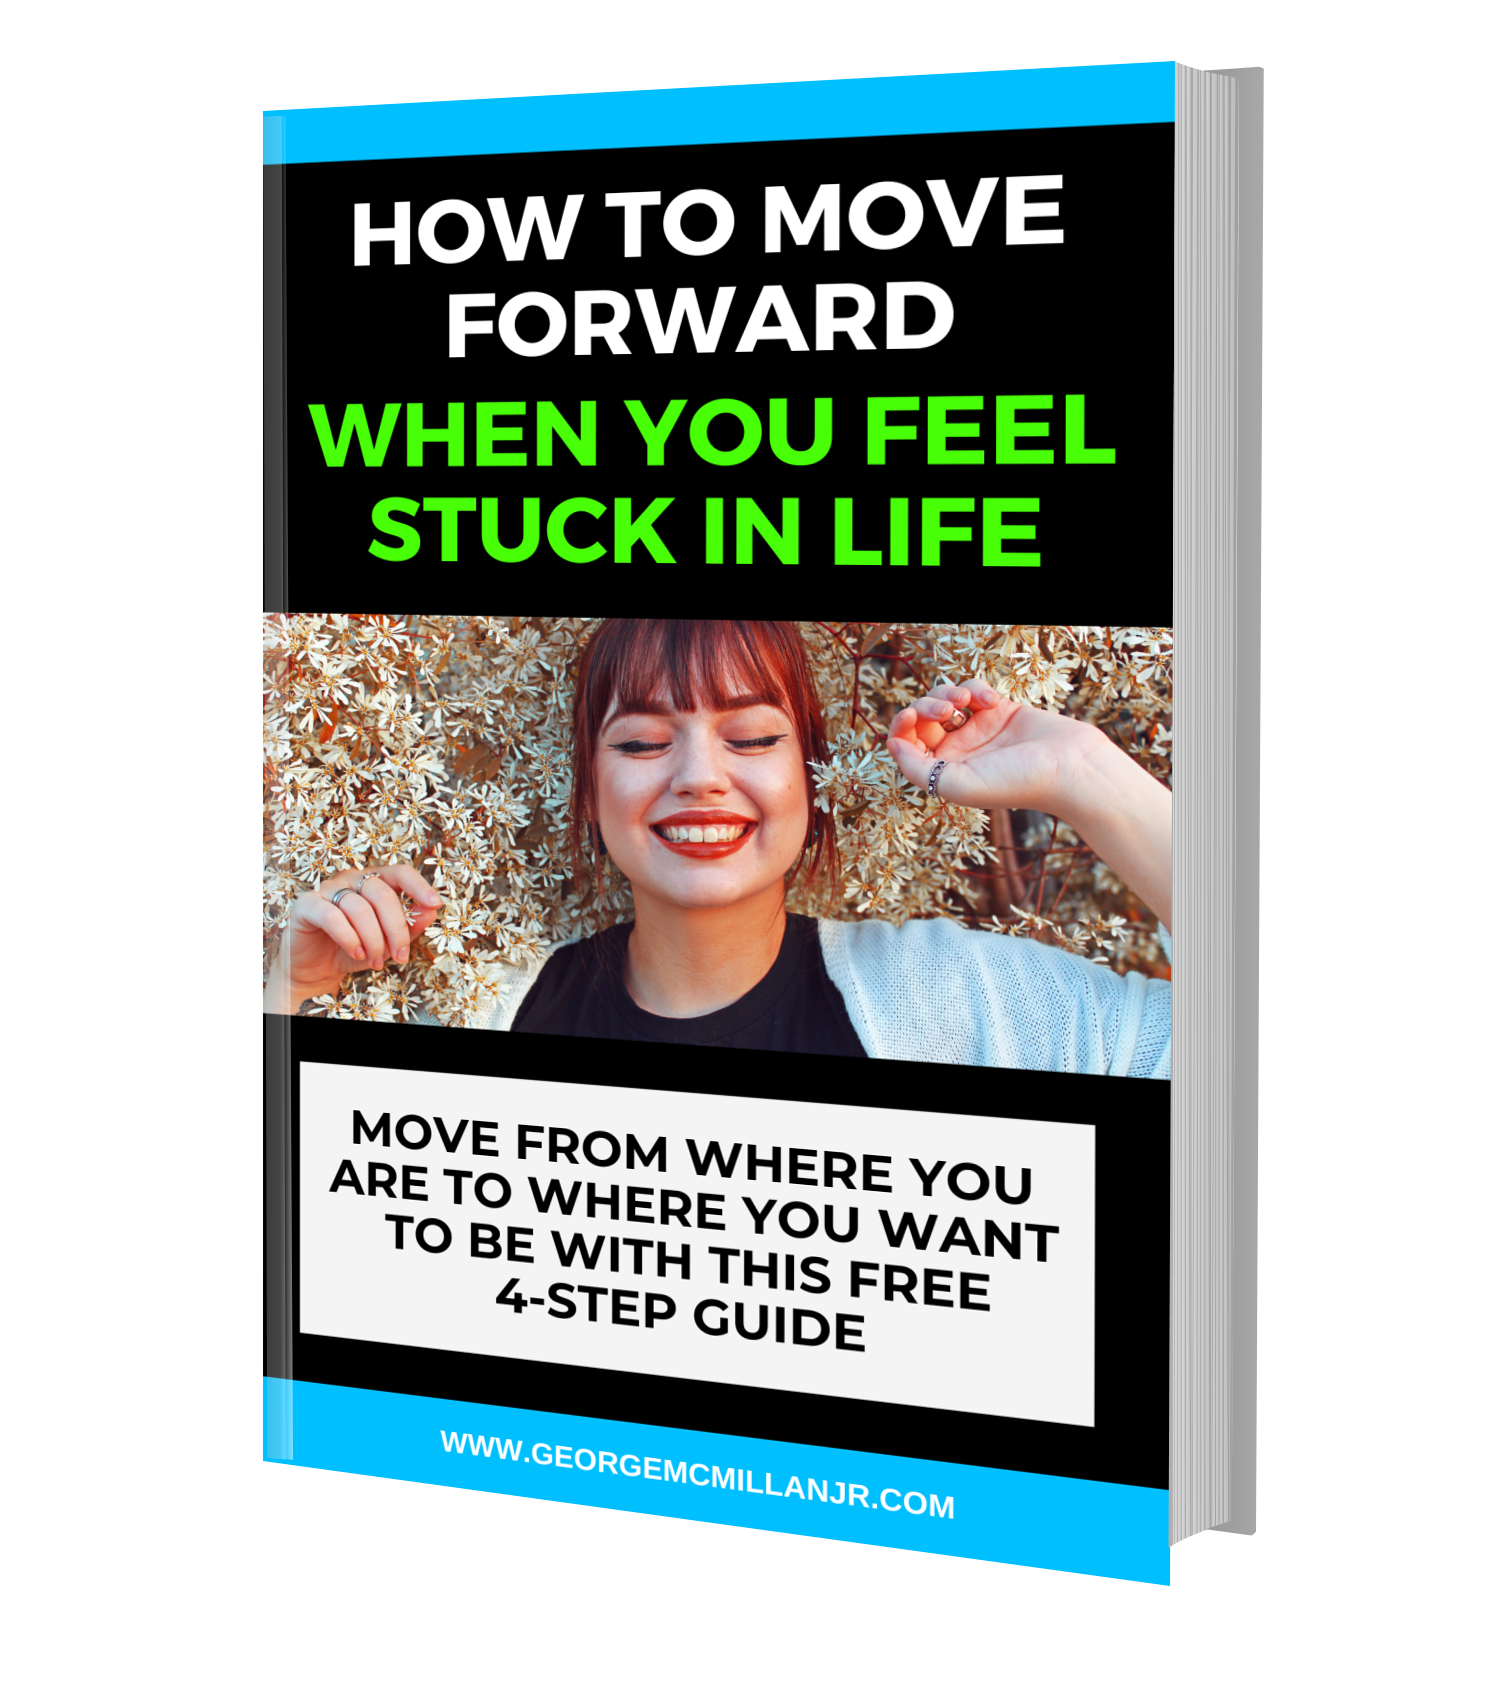 How to Move Forward When You Feel Stuck in Life Free PDF Guide